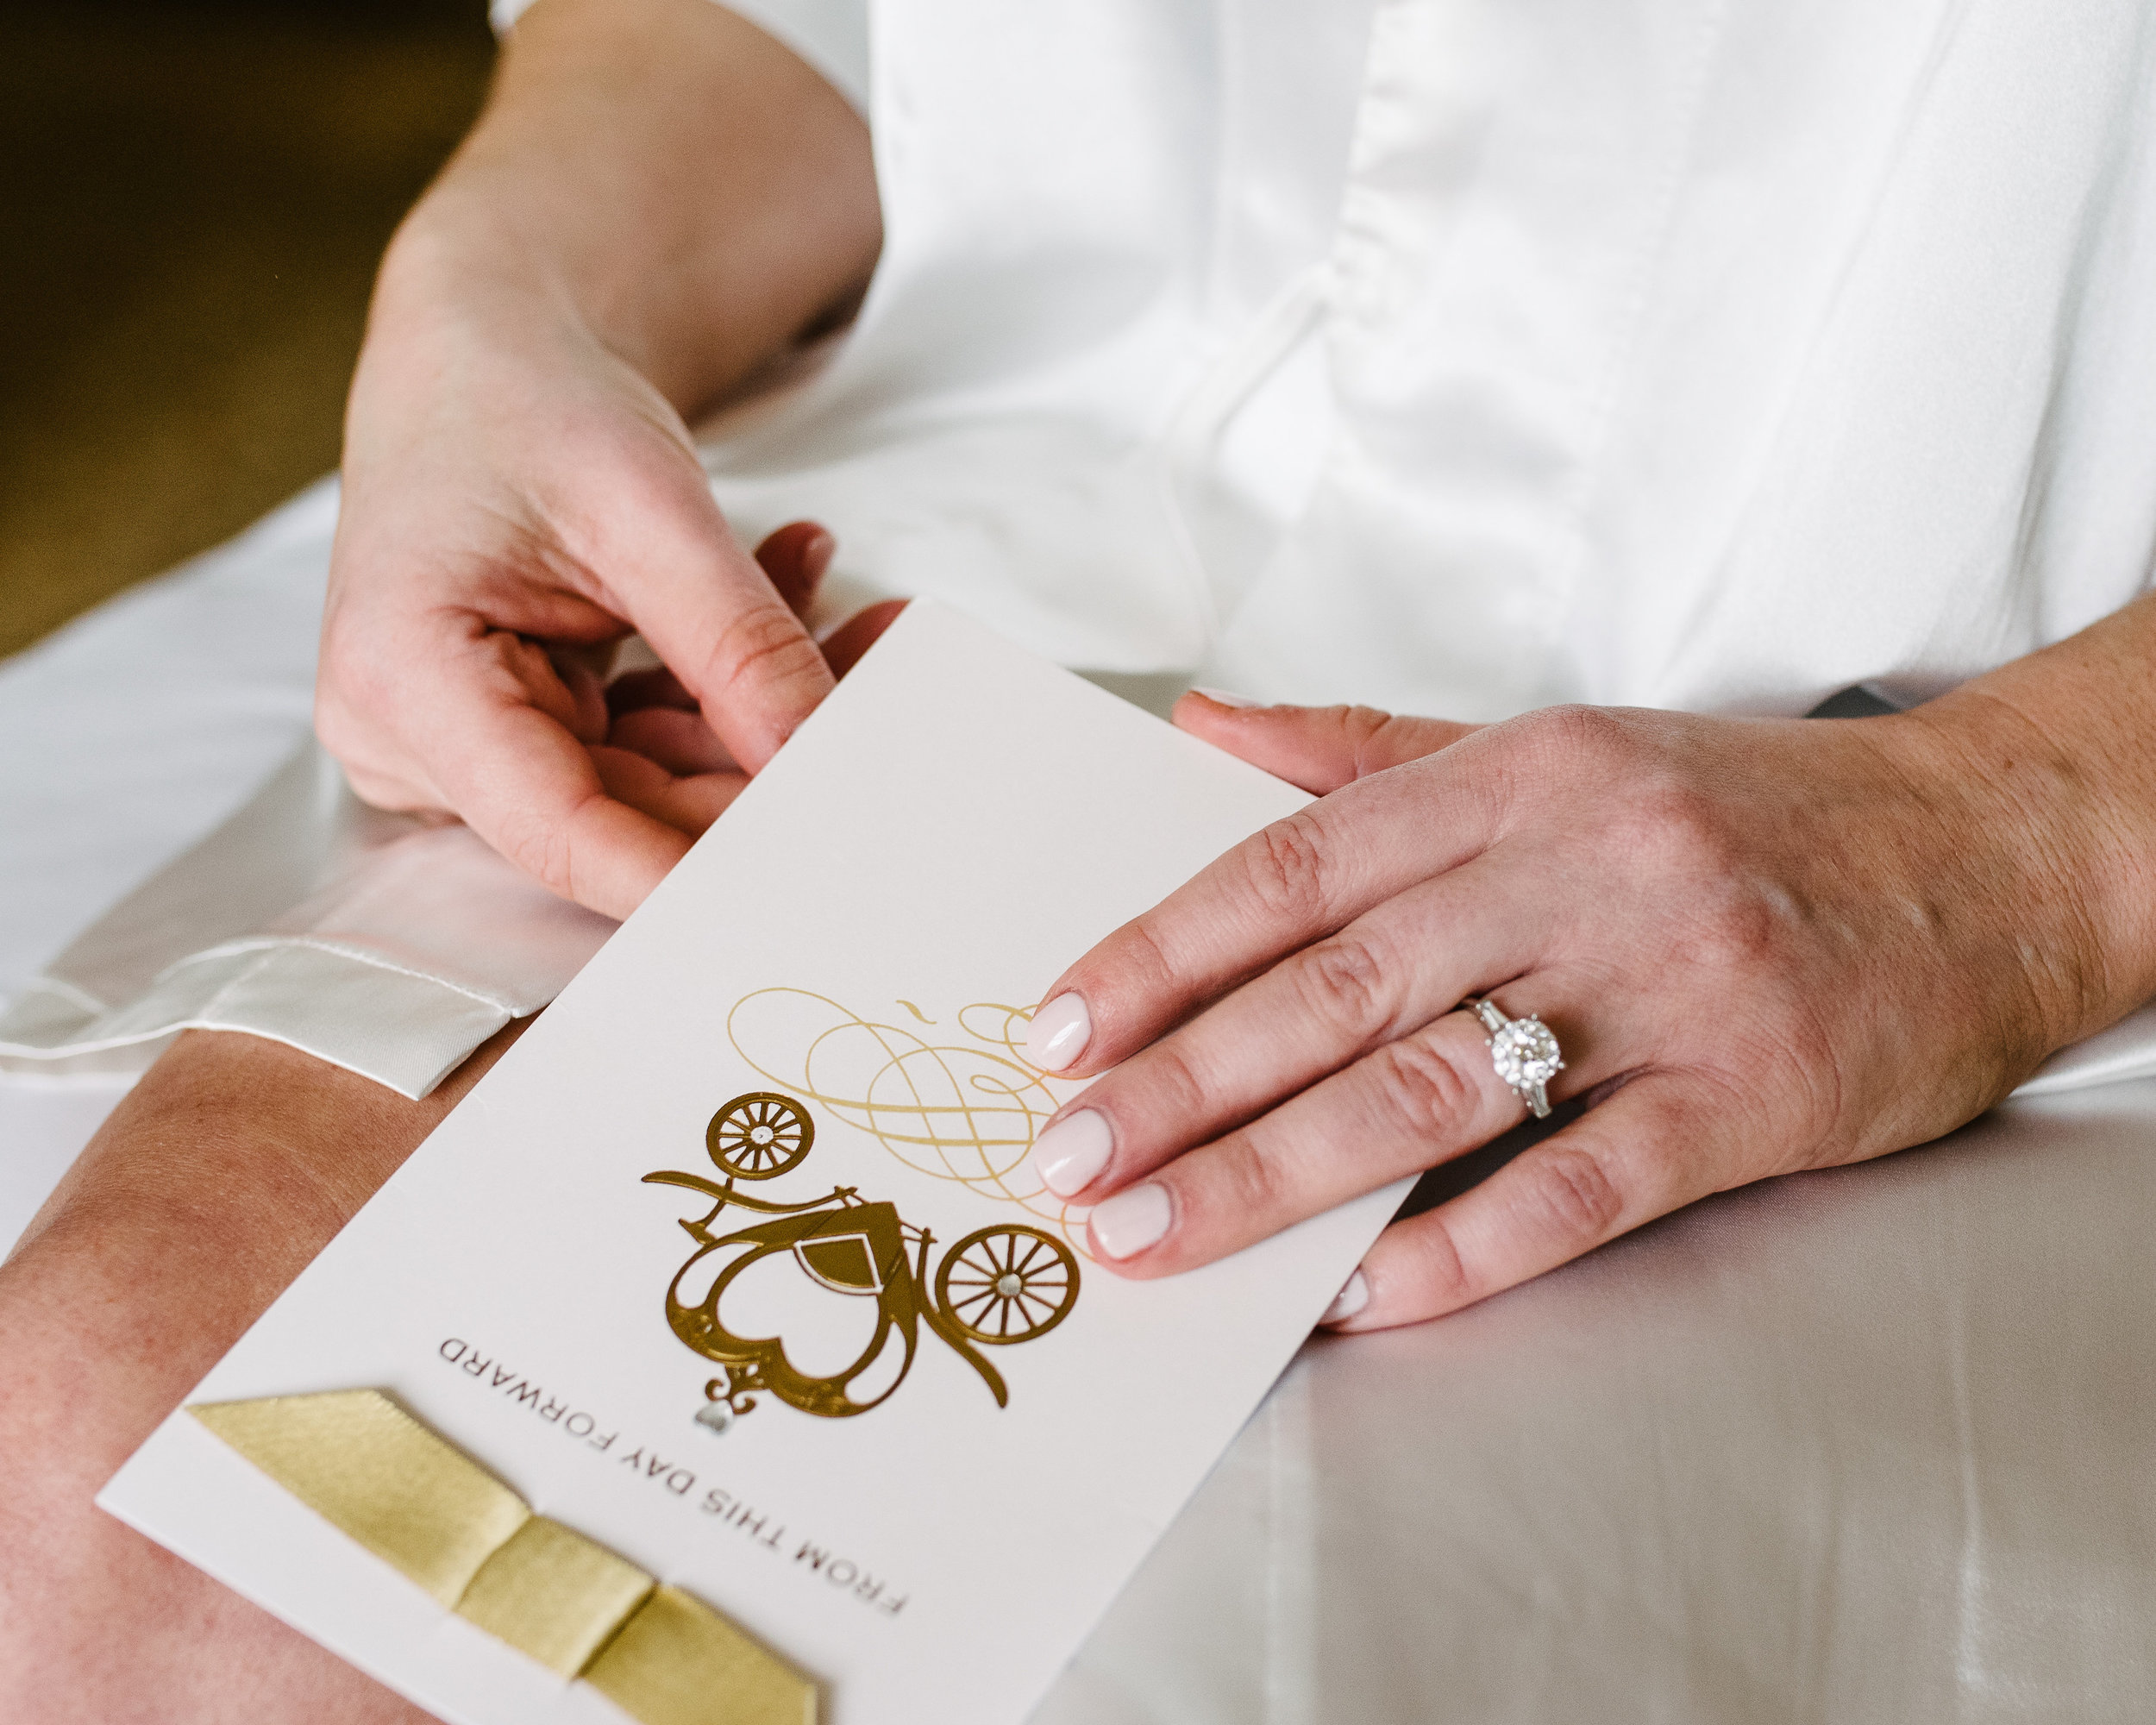 agpcollective_barlettowedding_excelsiorlancaster_gettingready-8602.jpg